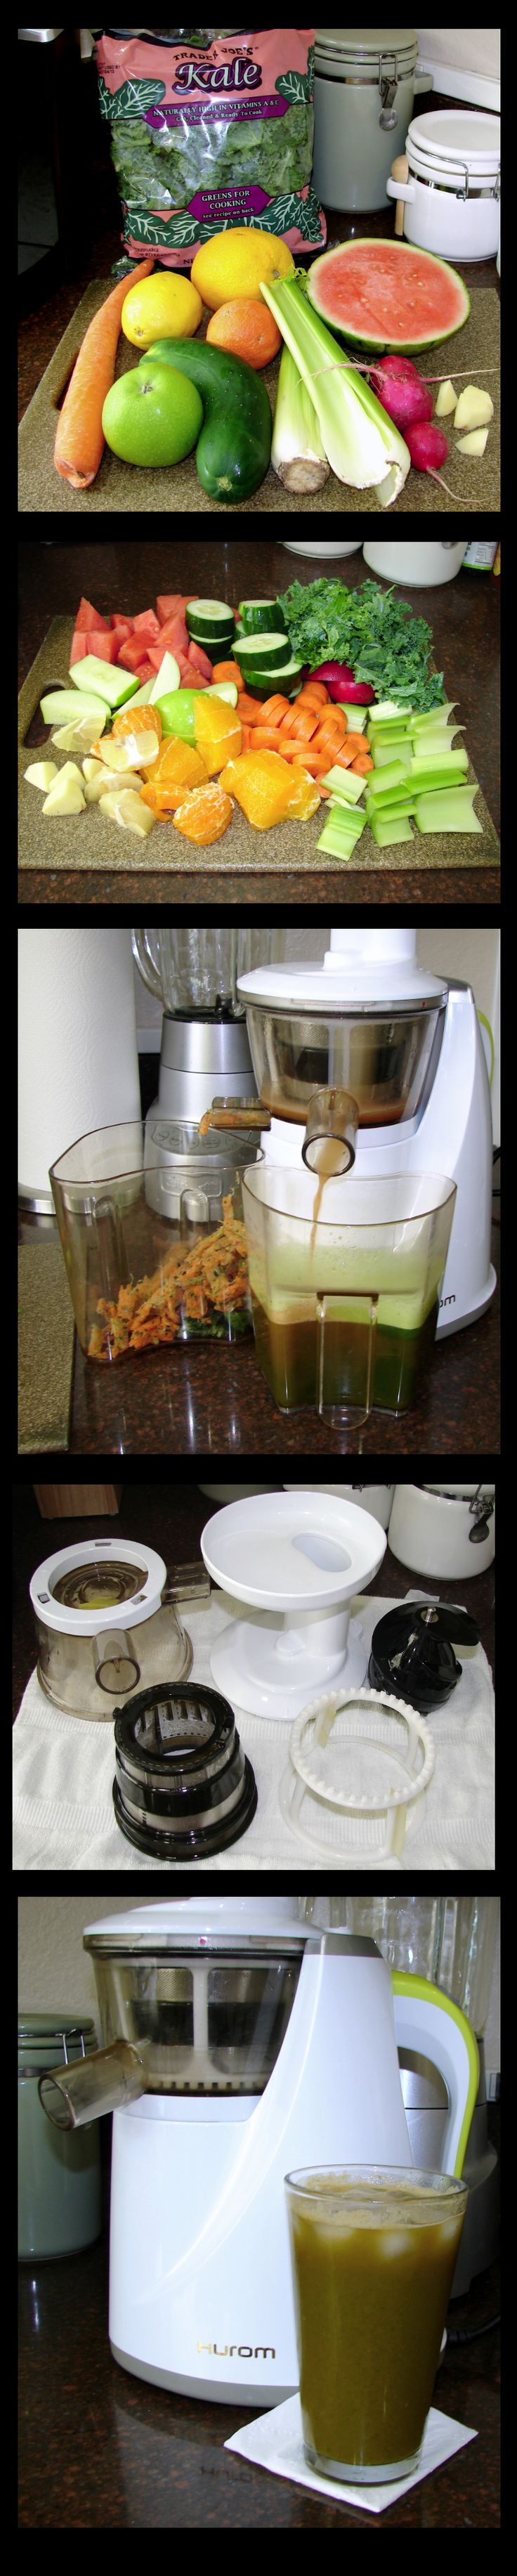 Slow Juicer Celery : 1000+ images about Best Juicer for Kale on Pinterest ...